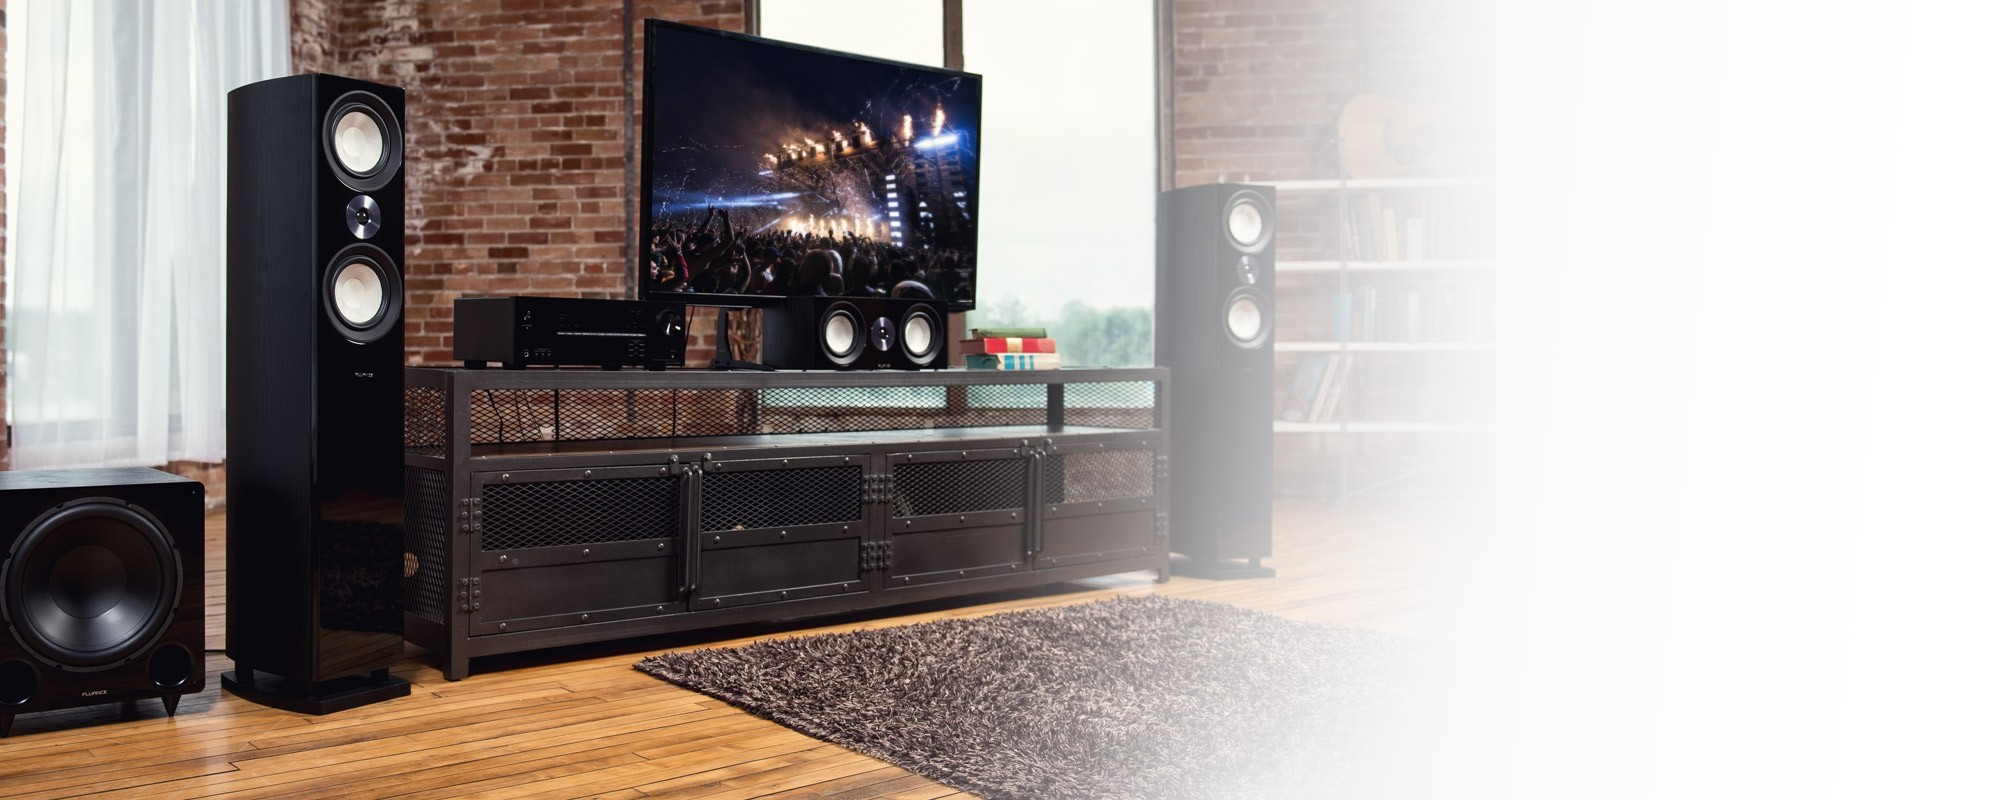 Reference Surround Sound Home Theater 5.1 Channel Speaker System with Bipolar Speakers and DB12 Subwoofer - Lifestyle Desktop